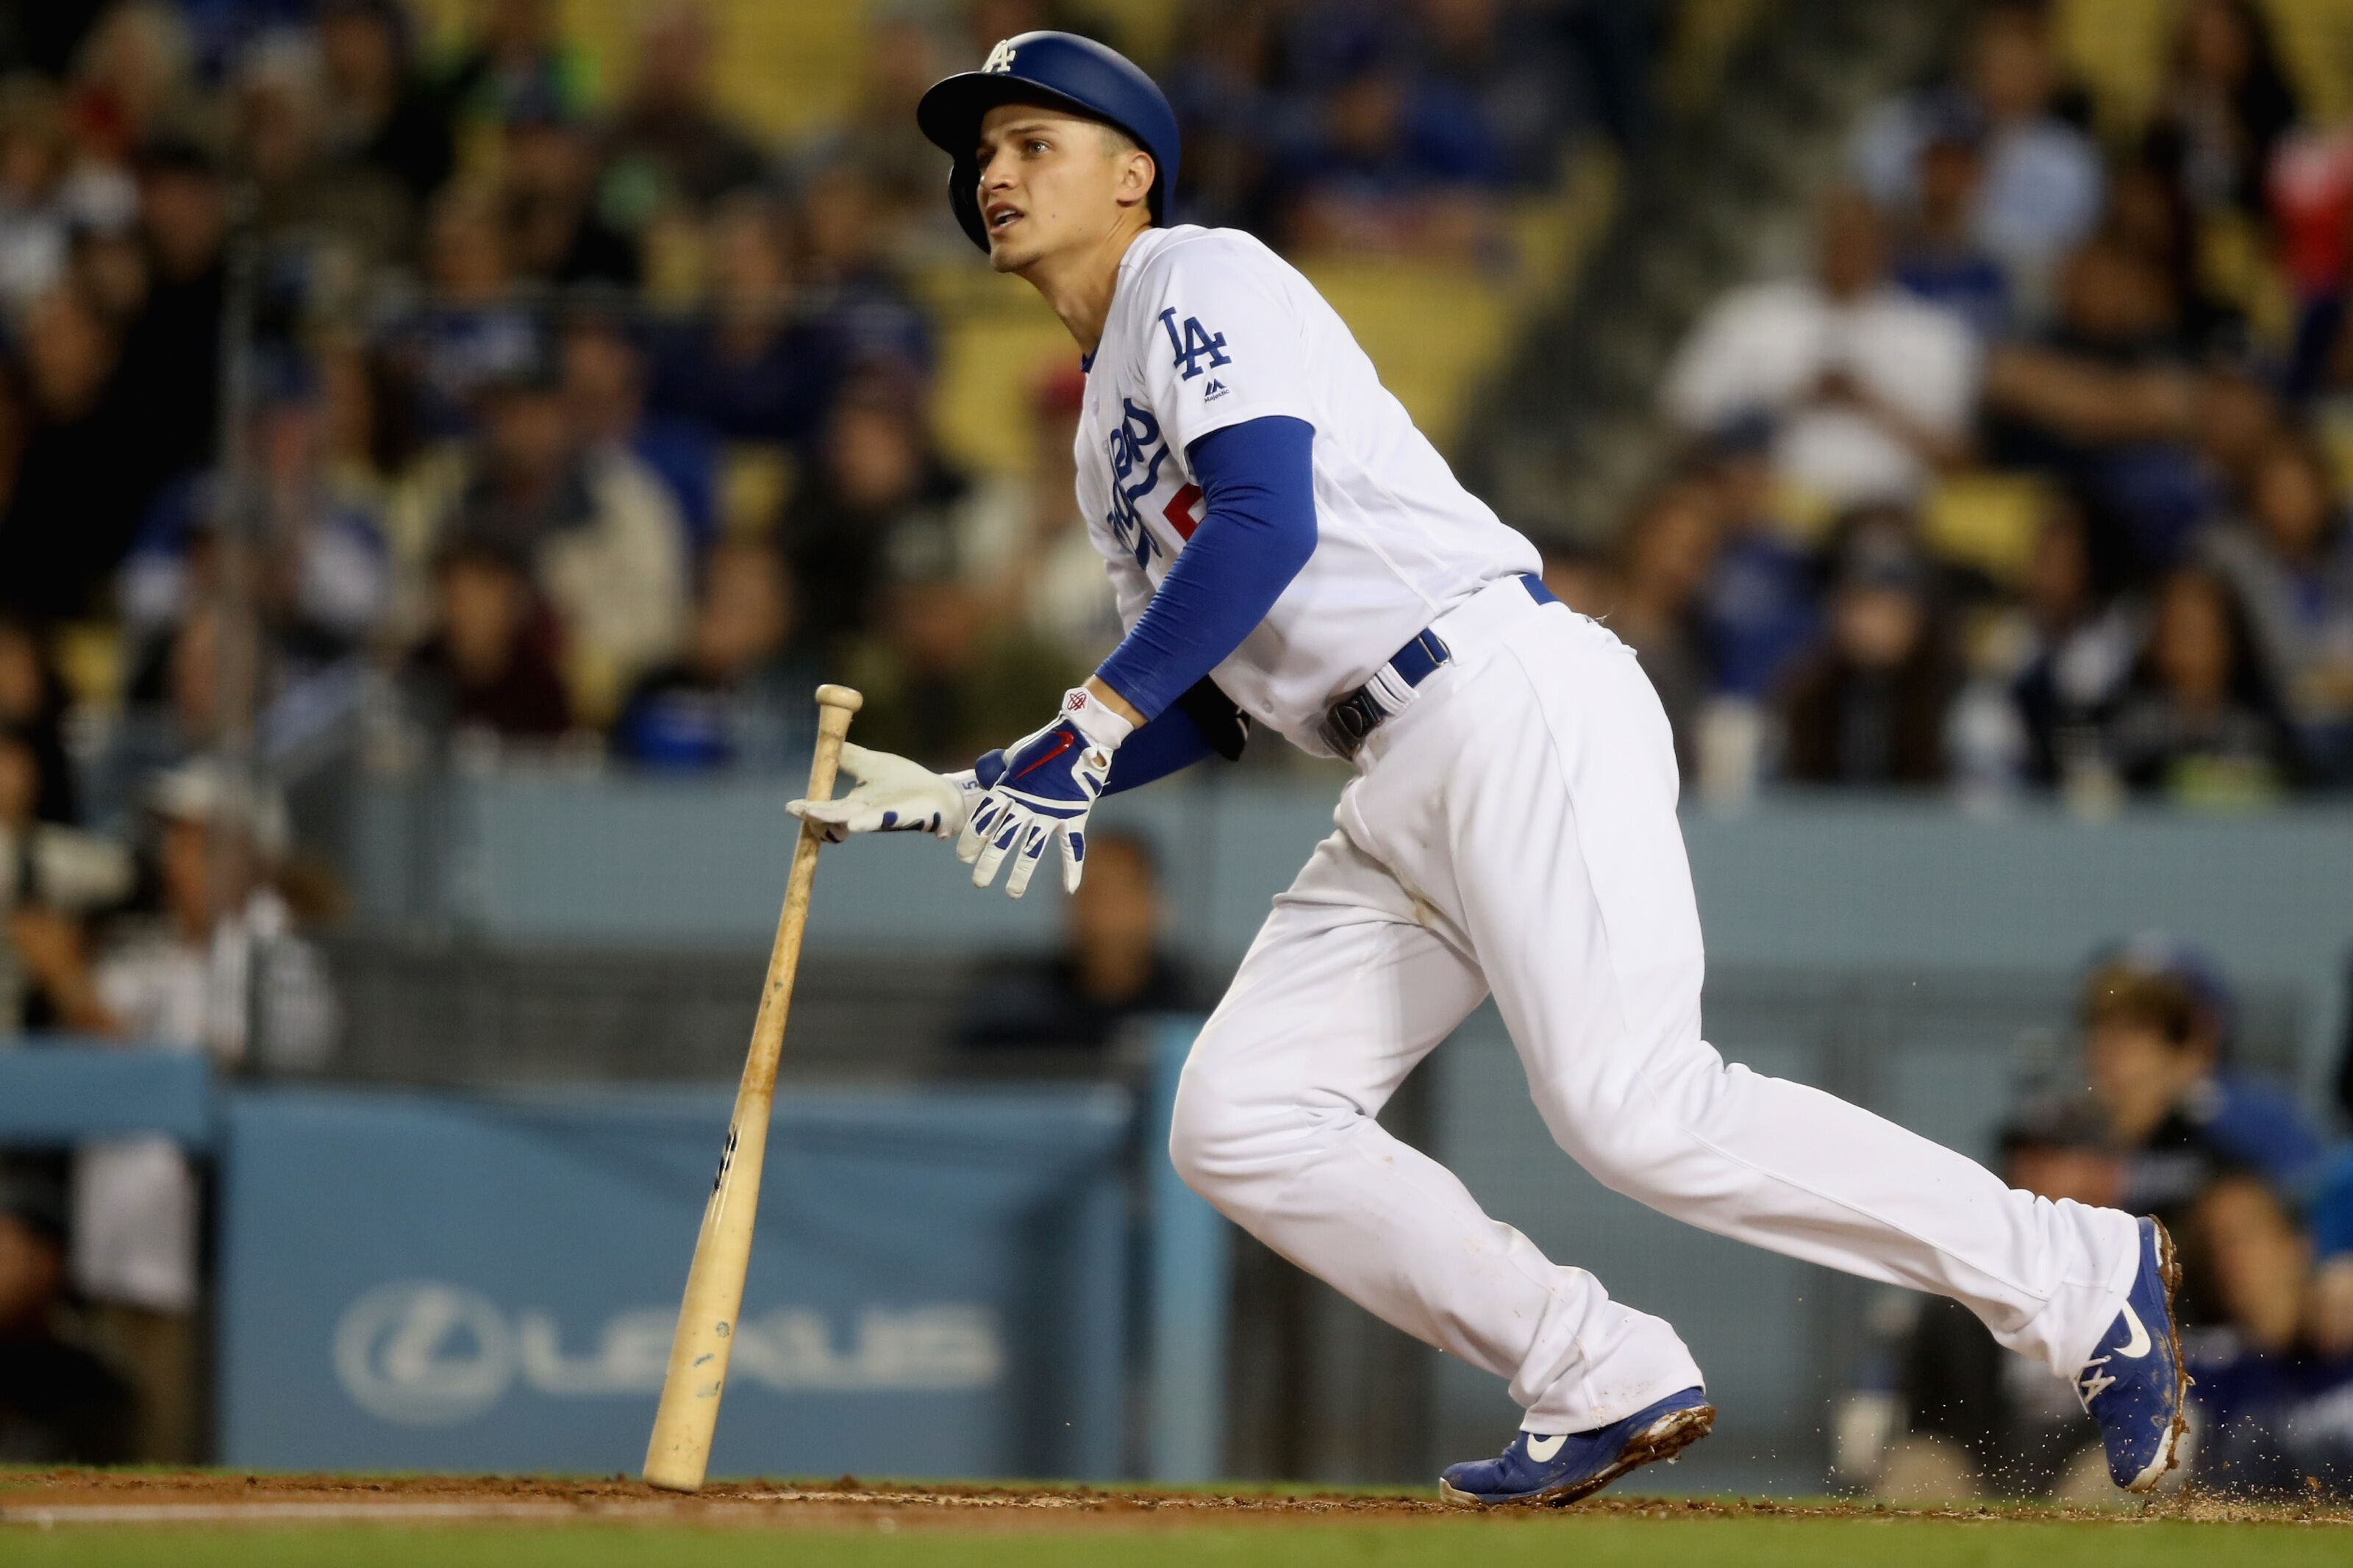 Dodgers: Does Corey Seager play with the Dodgers in 2020 and beyond?